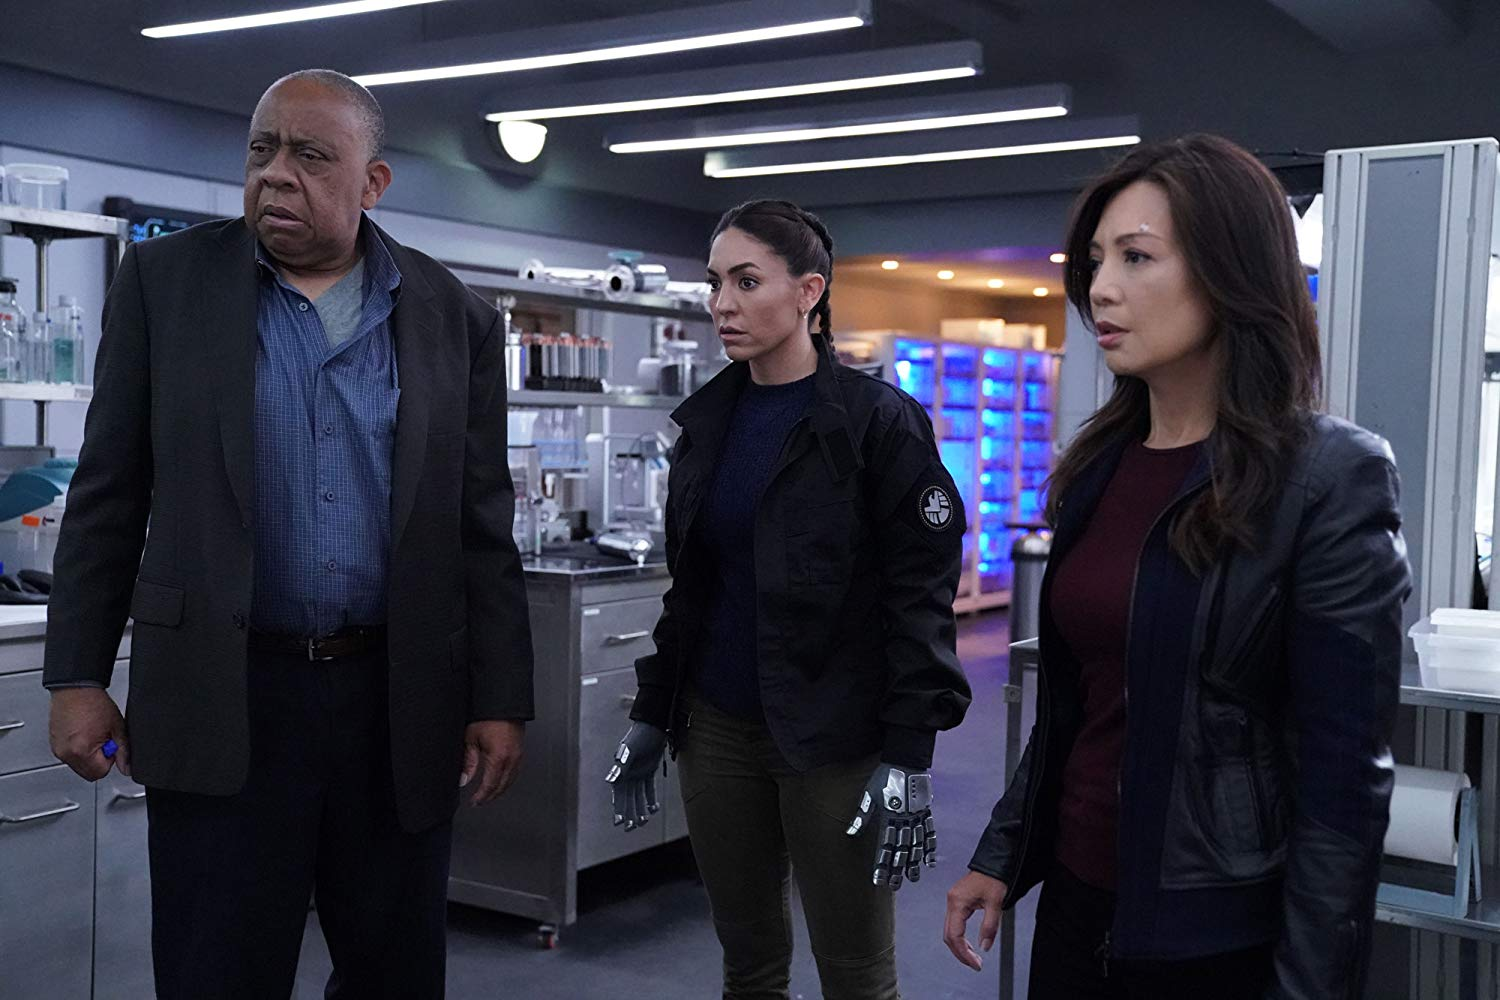 Agents of S.H.I.E.L.D.: Missing Pieces